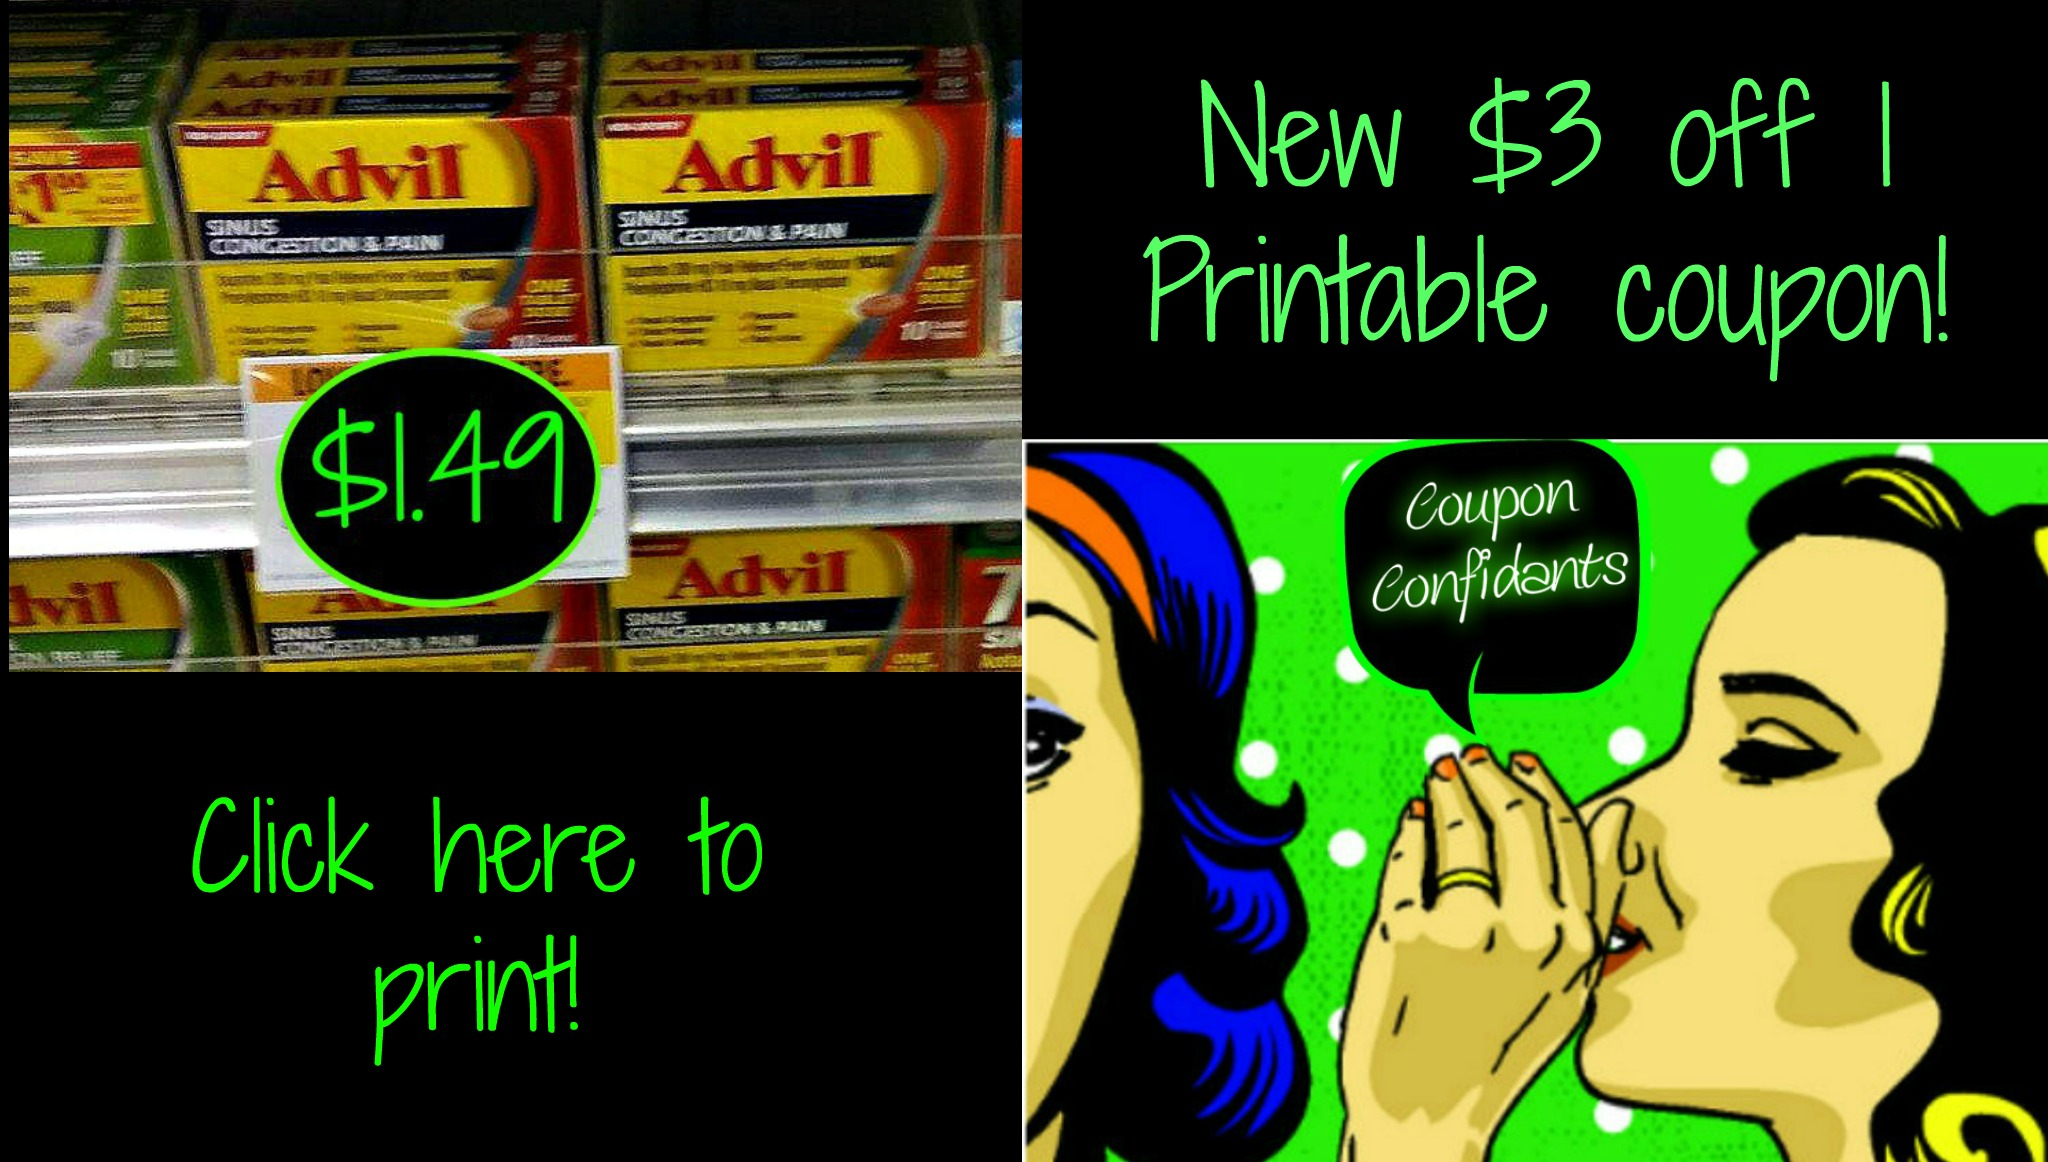 photograph regarding Advil Printable Coupon titled Advil Sinus or Allergy Medicines simply just $1.49 at Publix! Refreshing